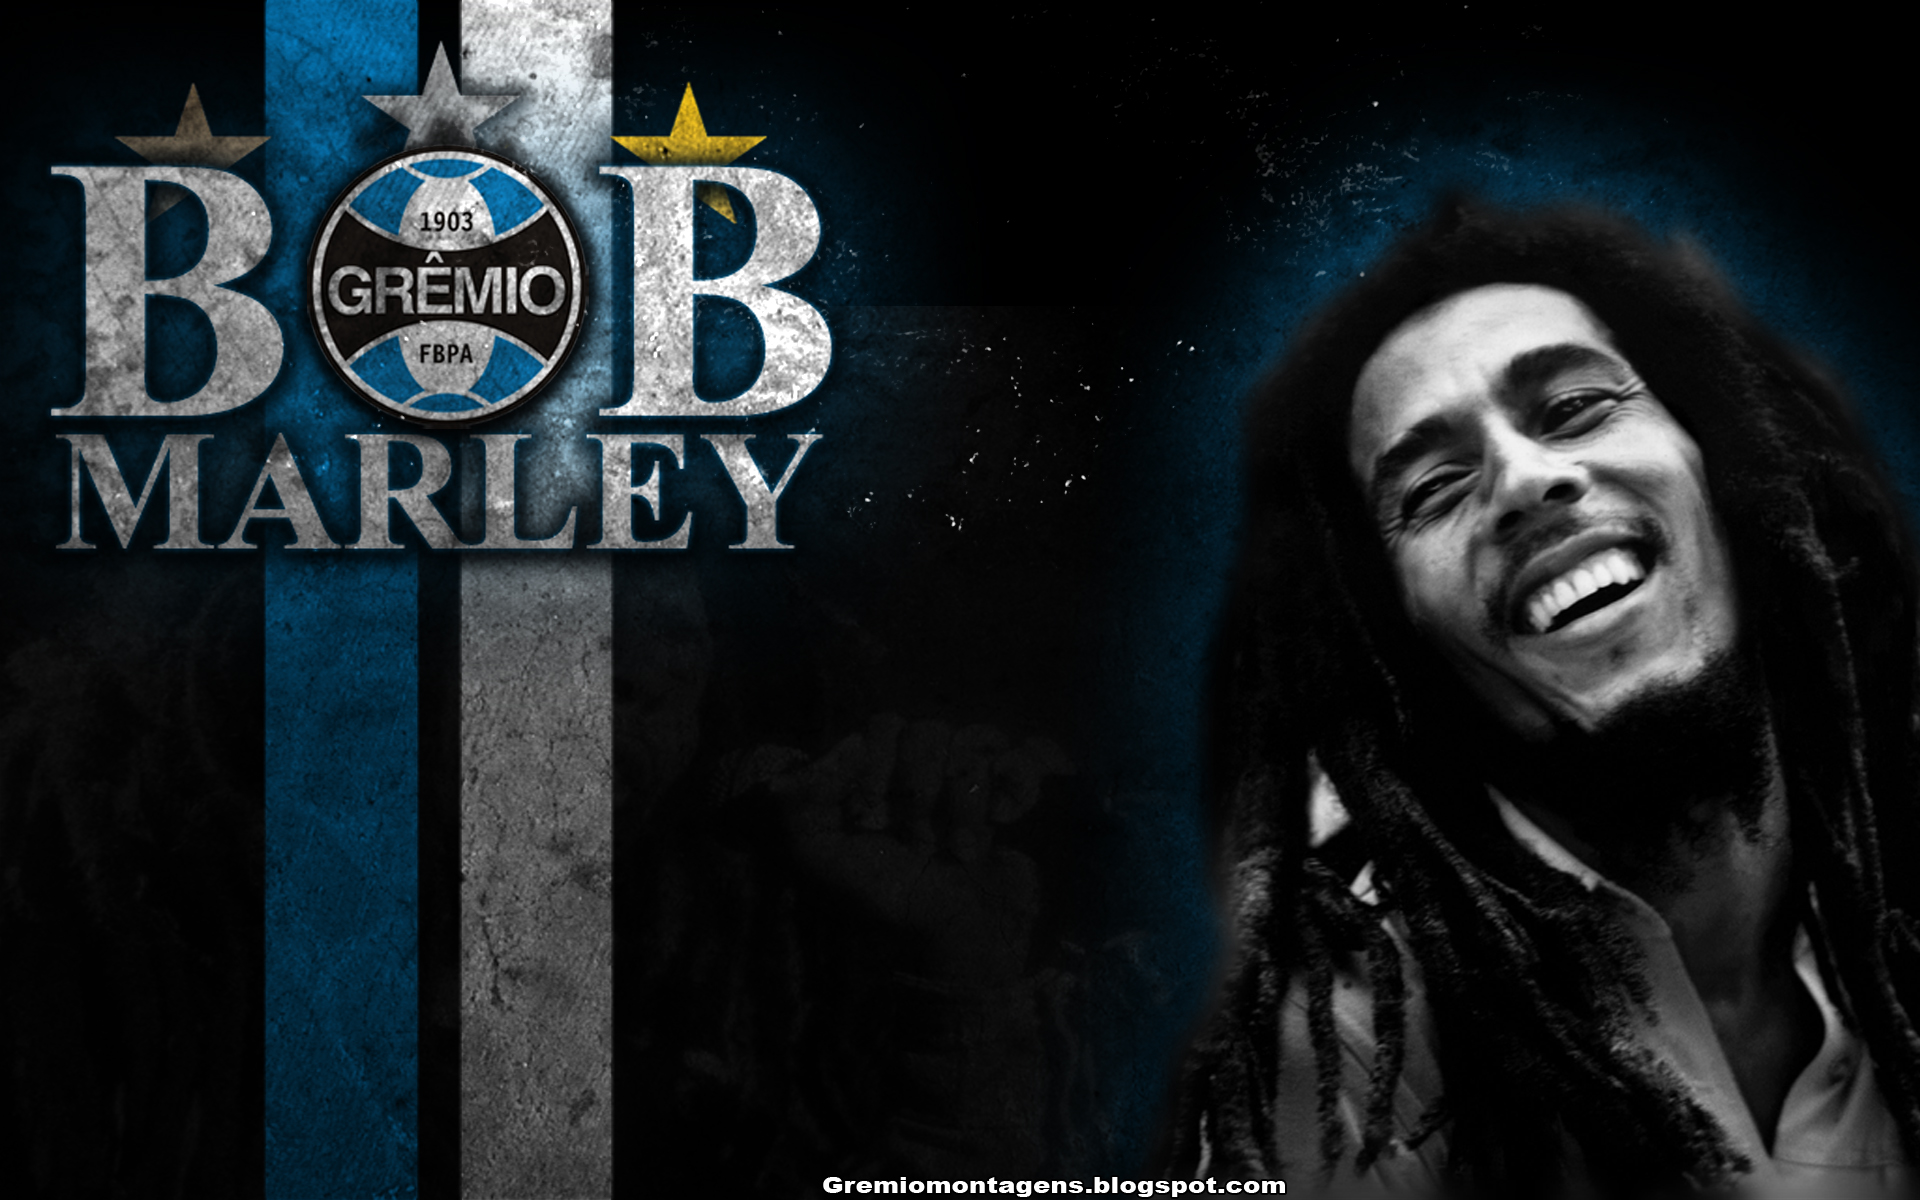 Bob Marley Wallpaper Desktop One Love : Bob Marley Wallpapers High Resolution and Quality Download